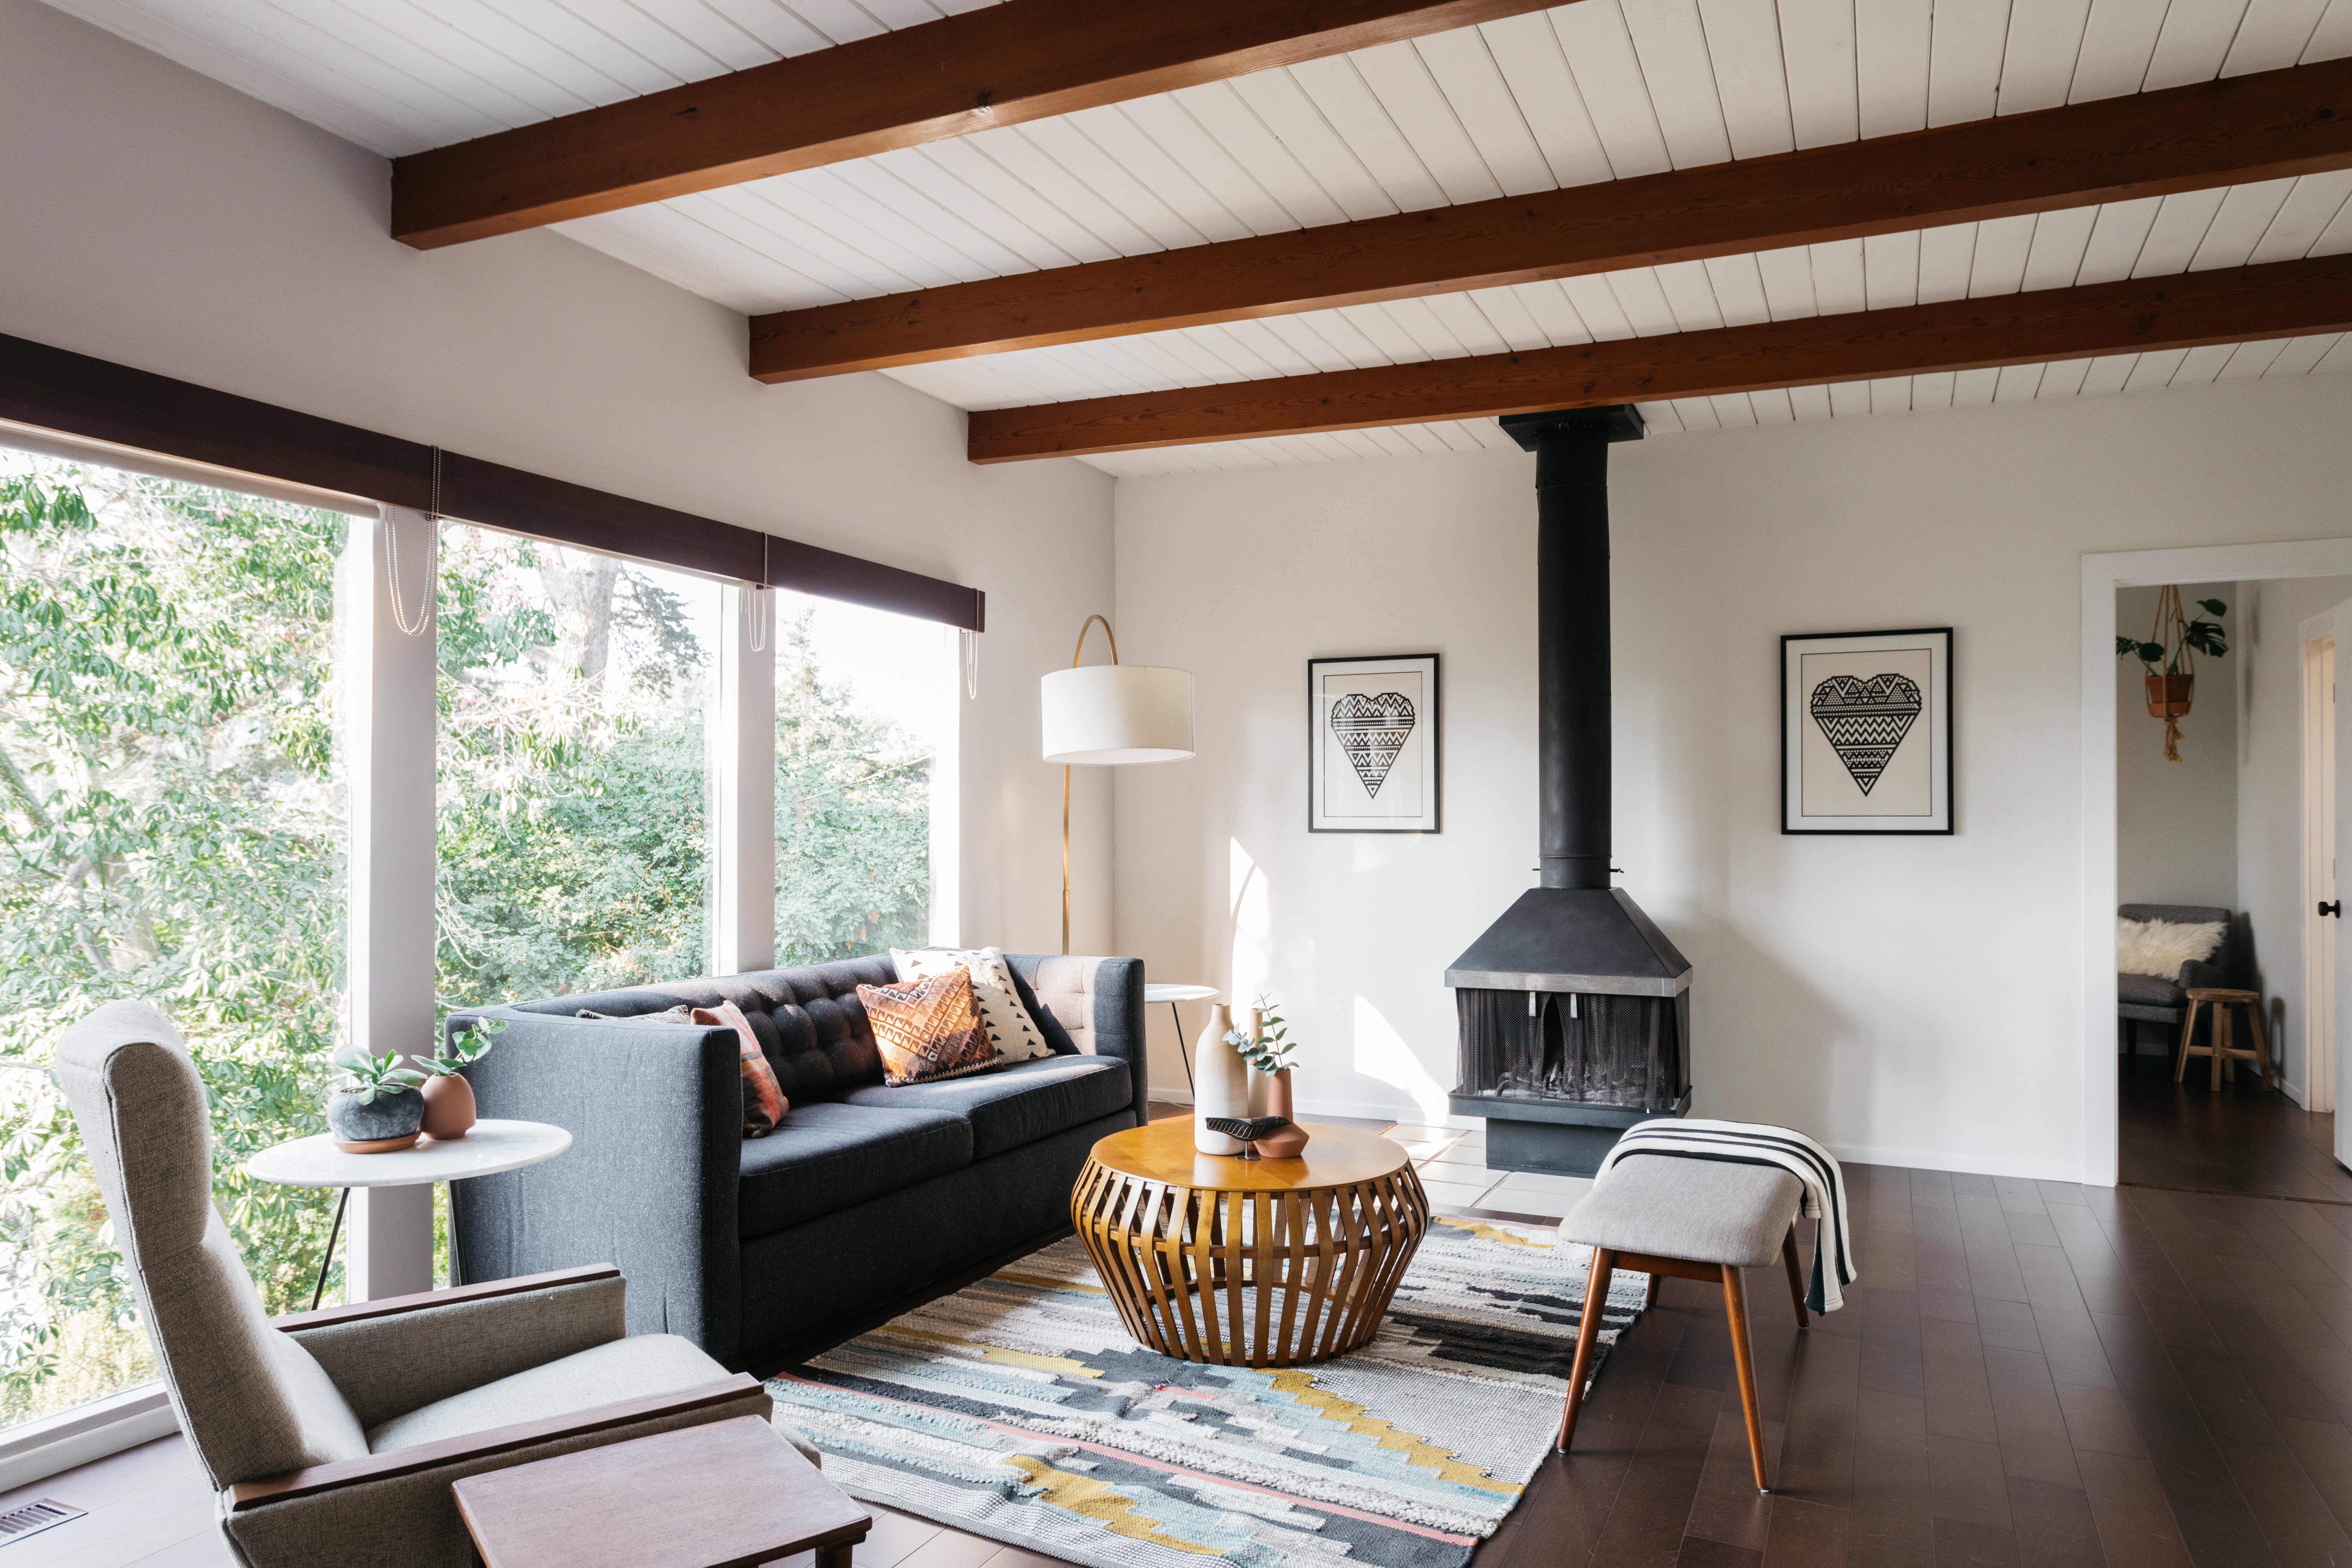 Bright room with wood beam ceilings, glass walls overlooking trees, and a black fireplace.